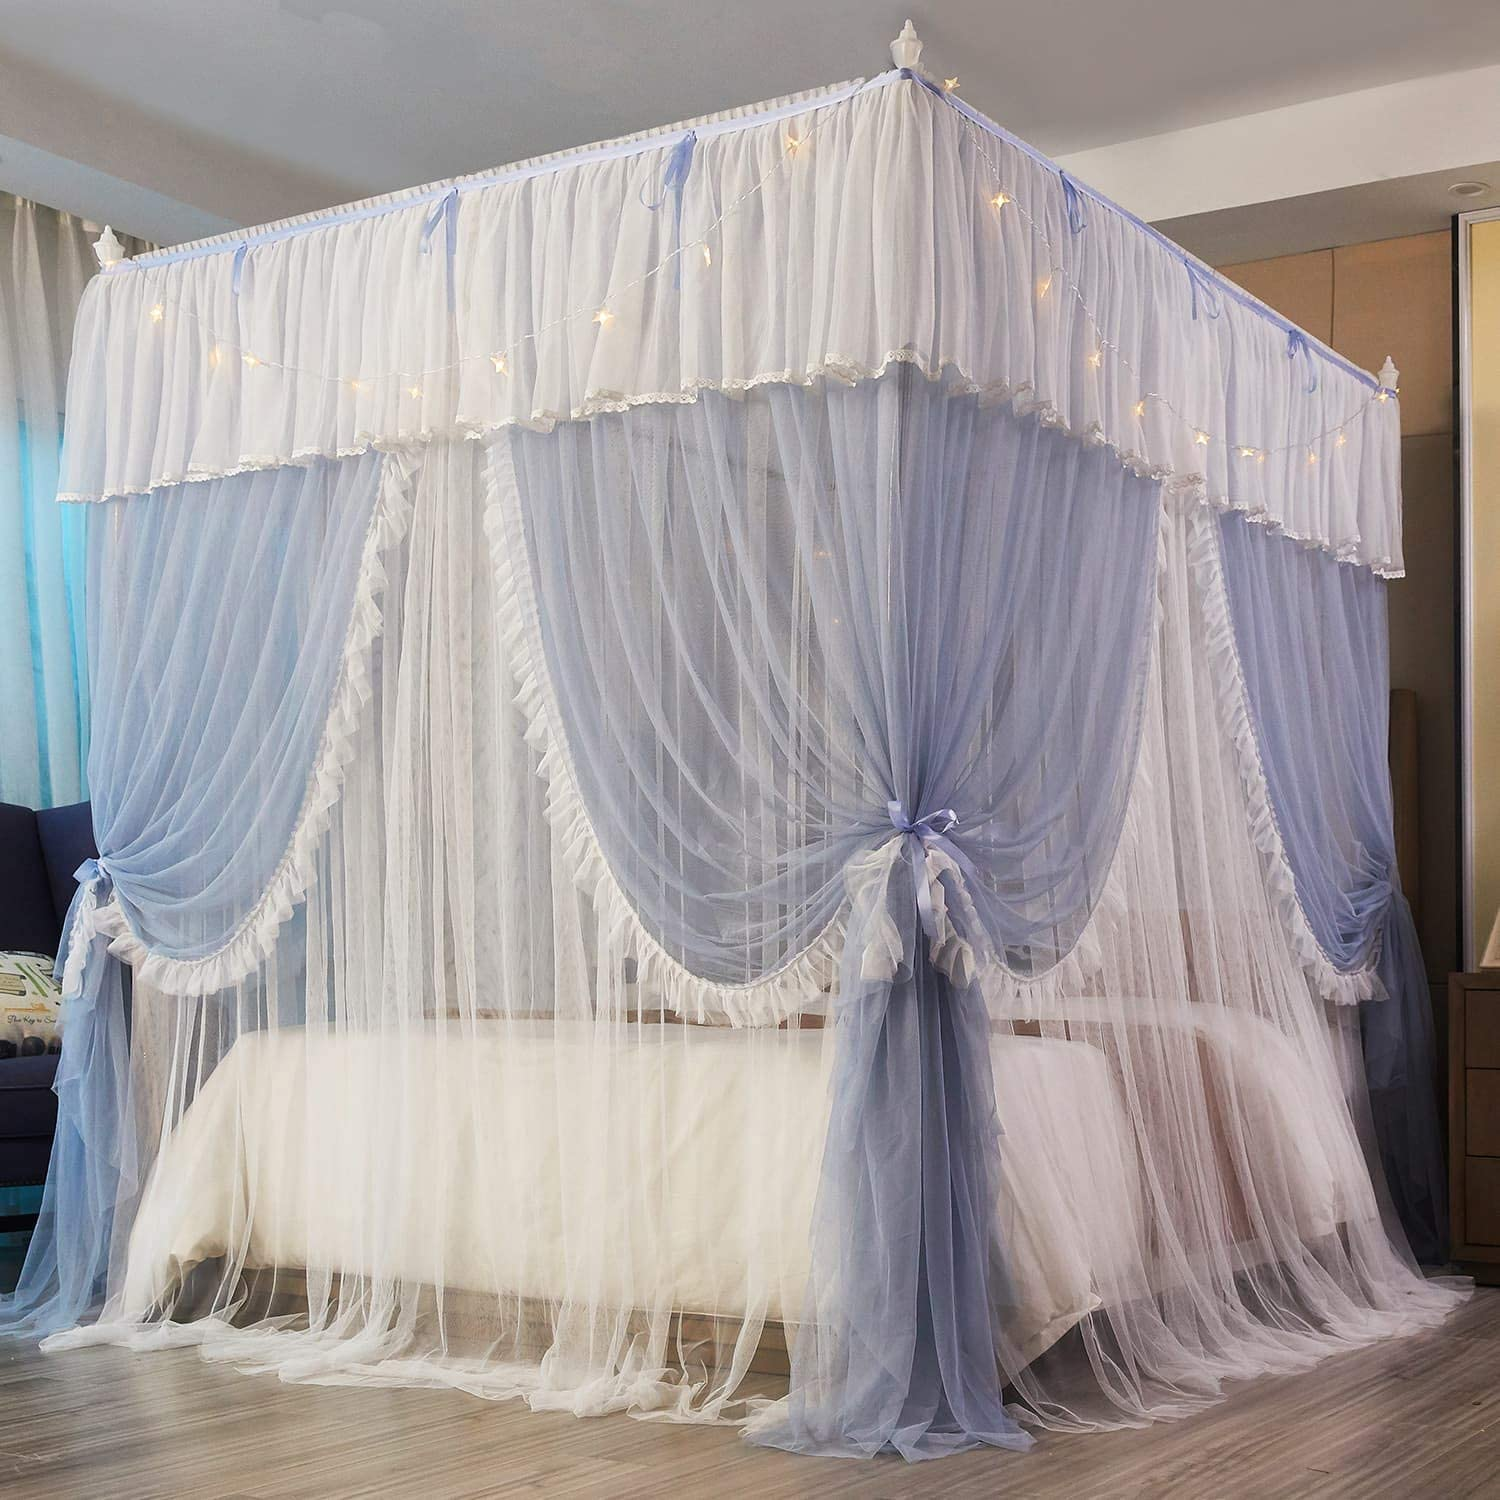 Mengersi 4 Corners Post Canopy Bed Opening with Lights-4 Curtain safety High material